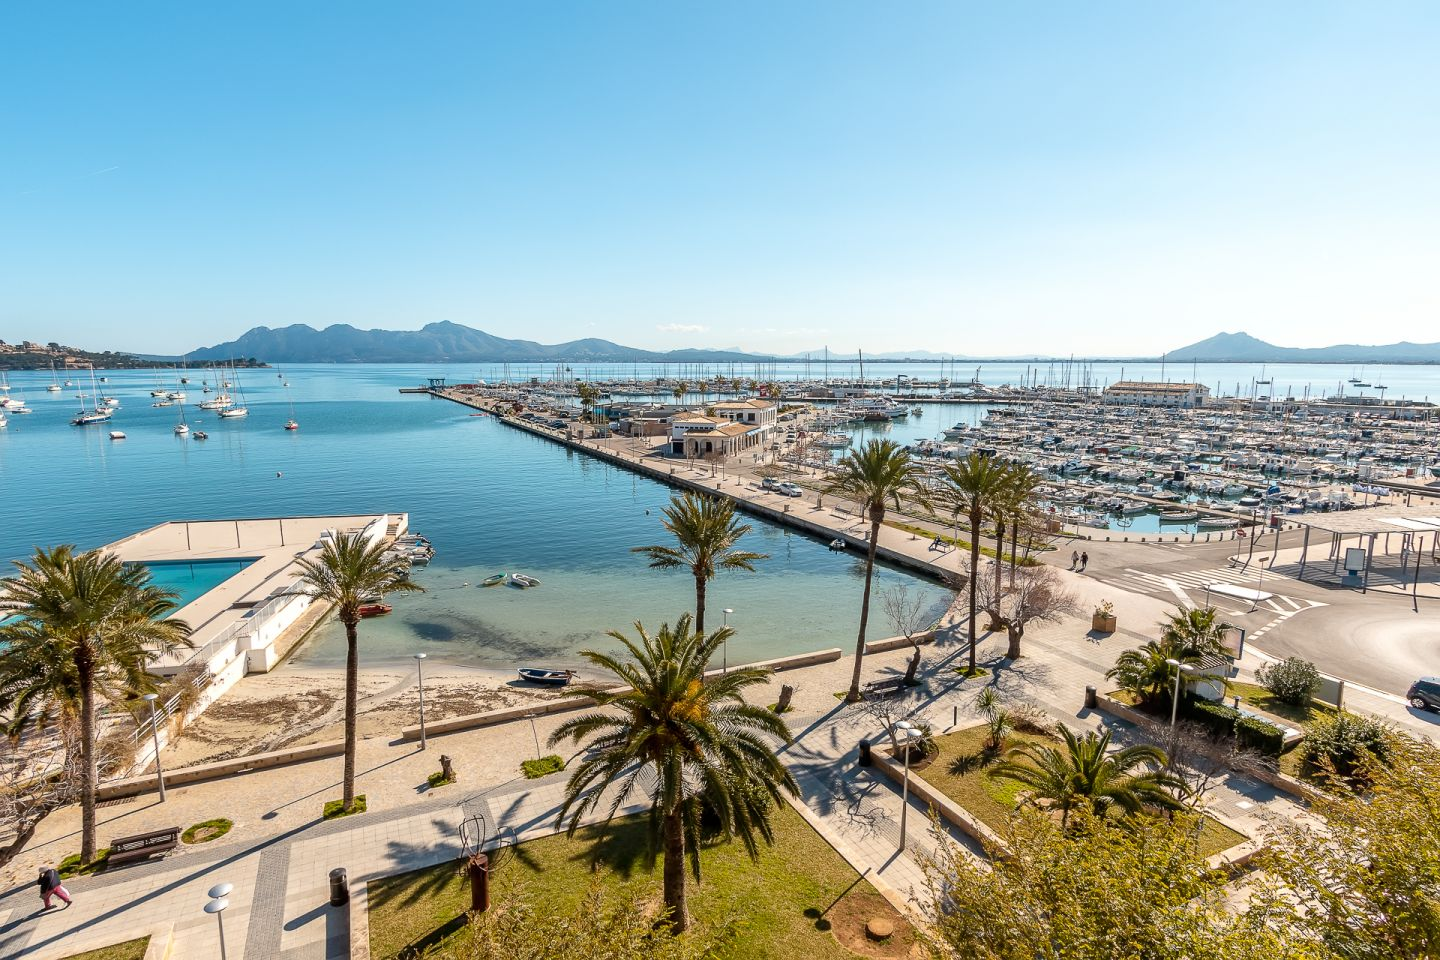 5 Bed Apartment for sale in Puerto Pollensa 0